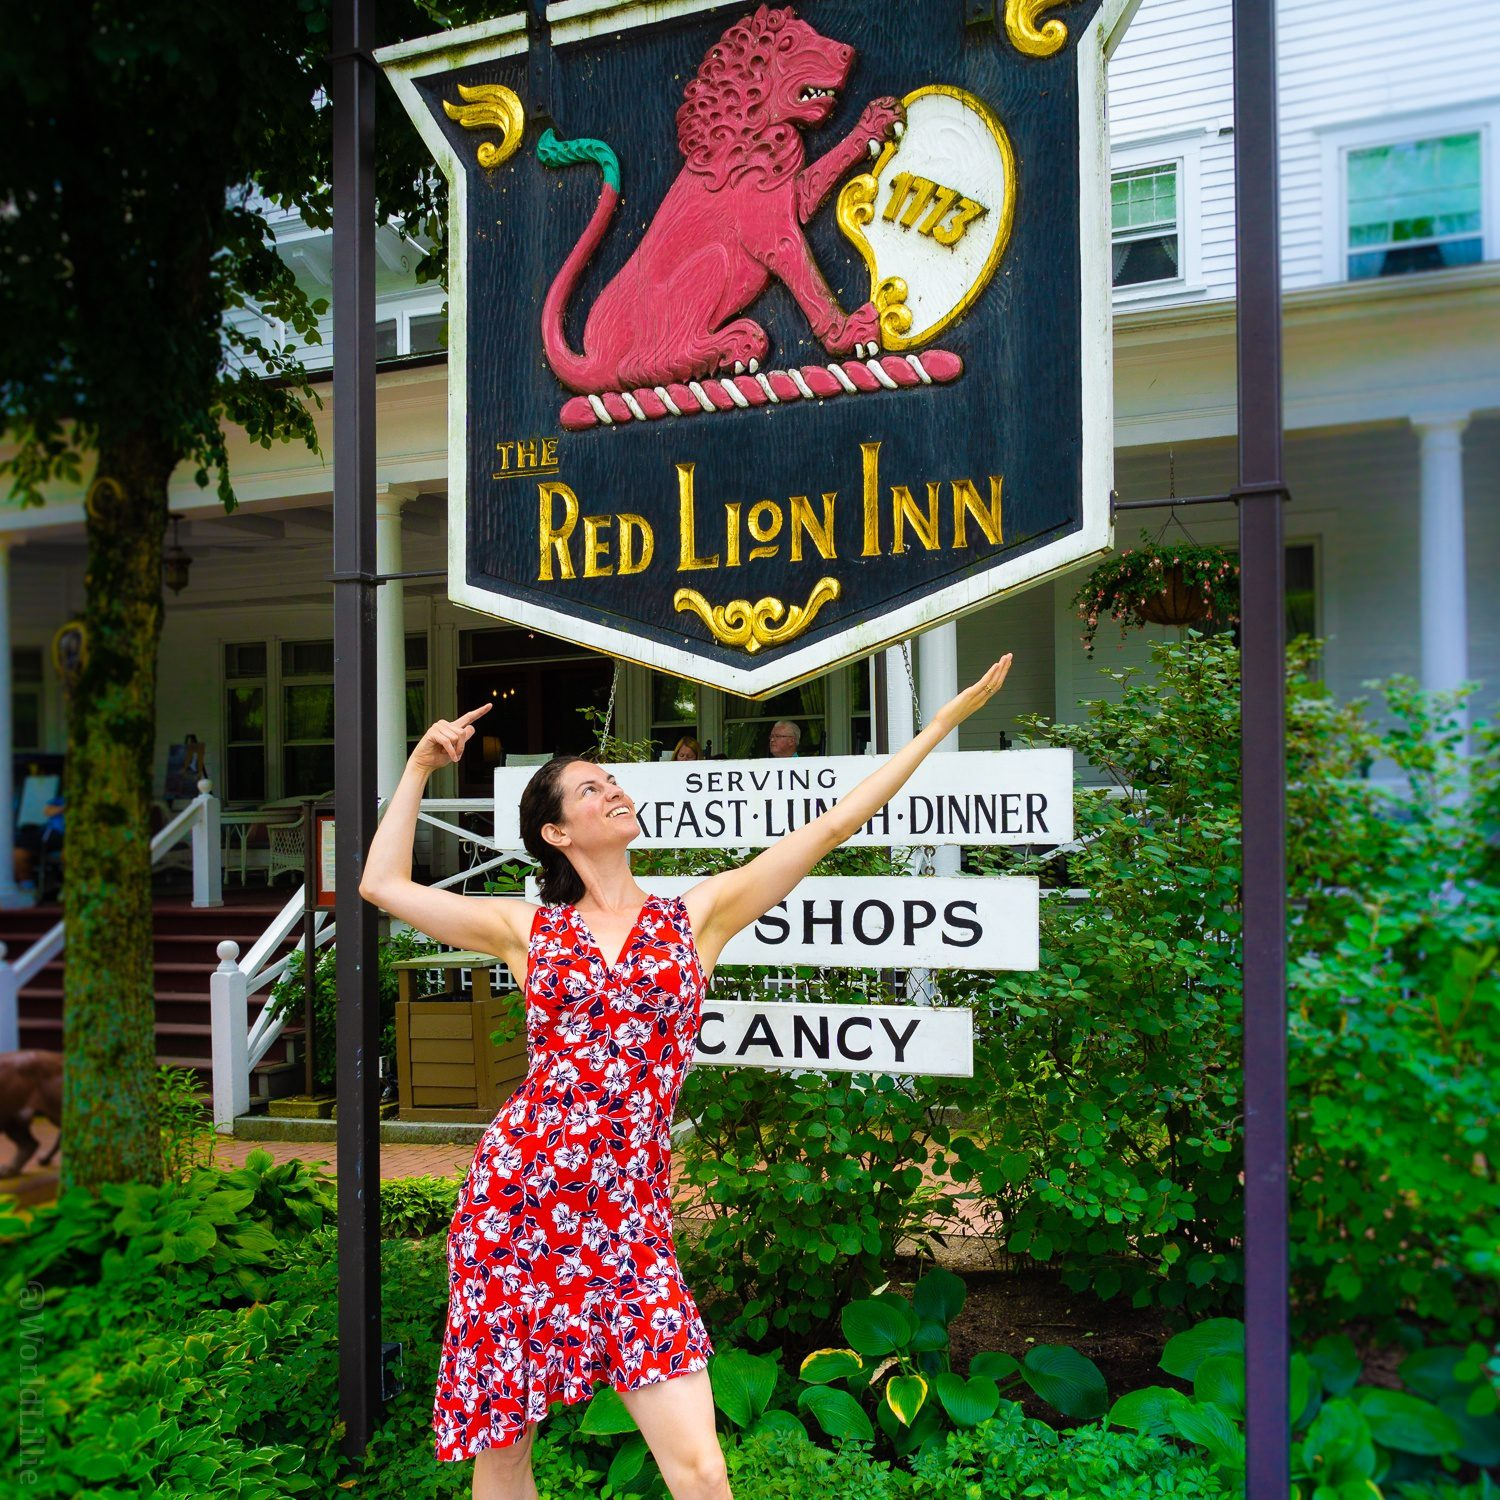 The Inn was established in 1773!